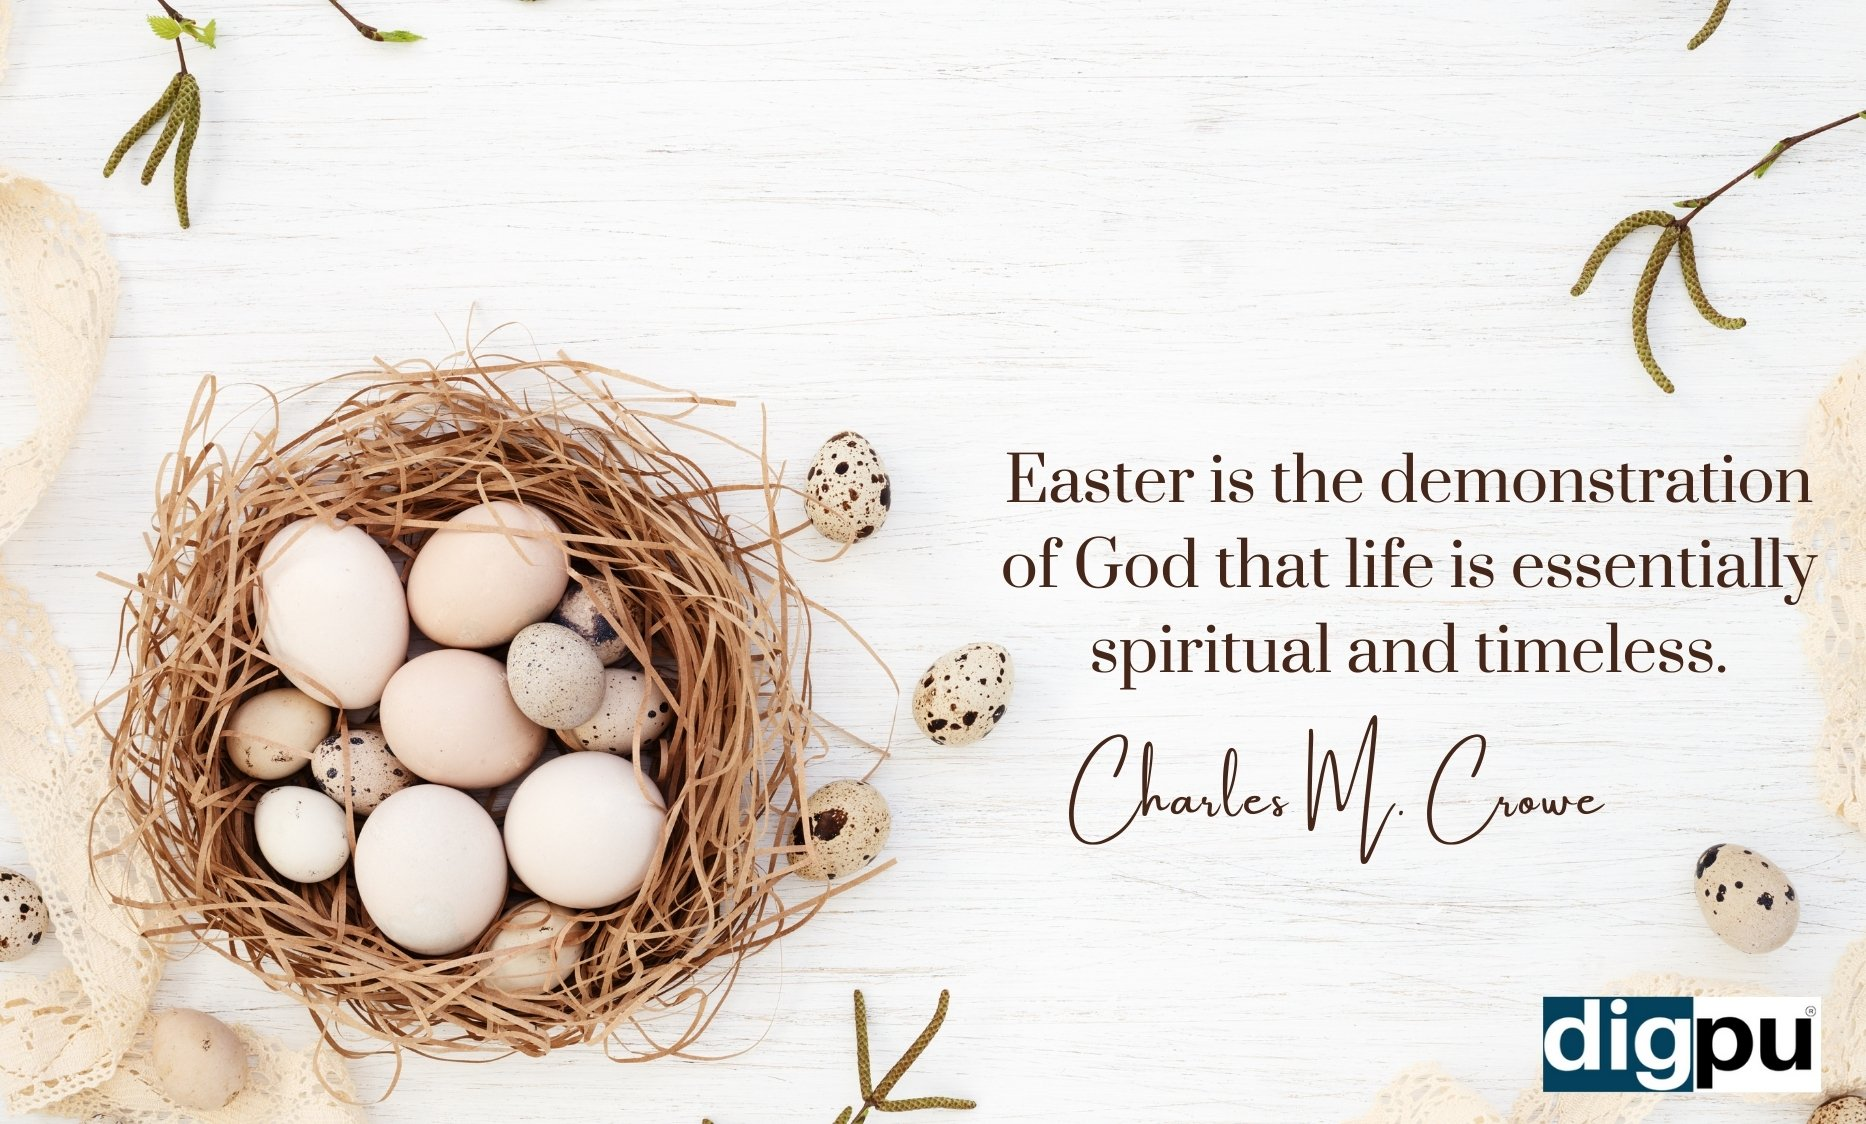 Happy Easter 2021 History, Significance and Greetings - Digpu News